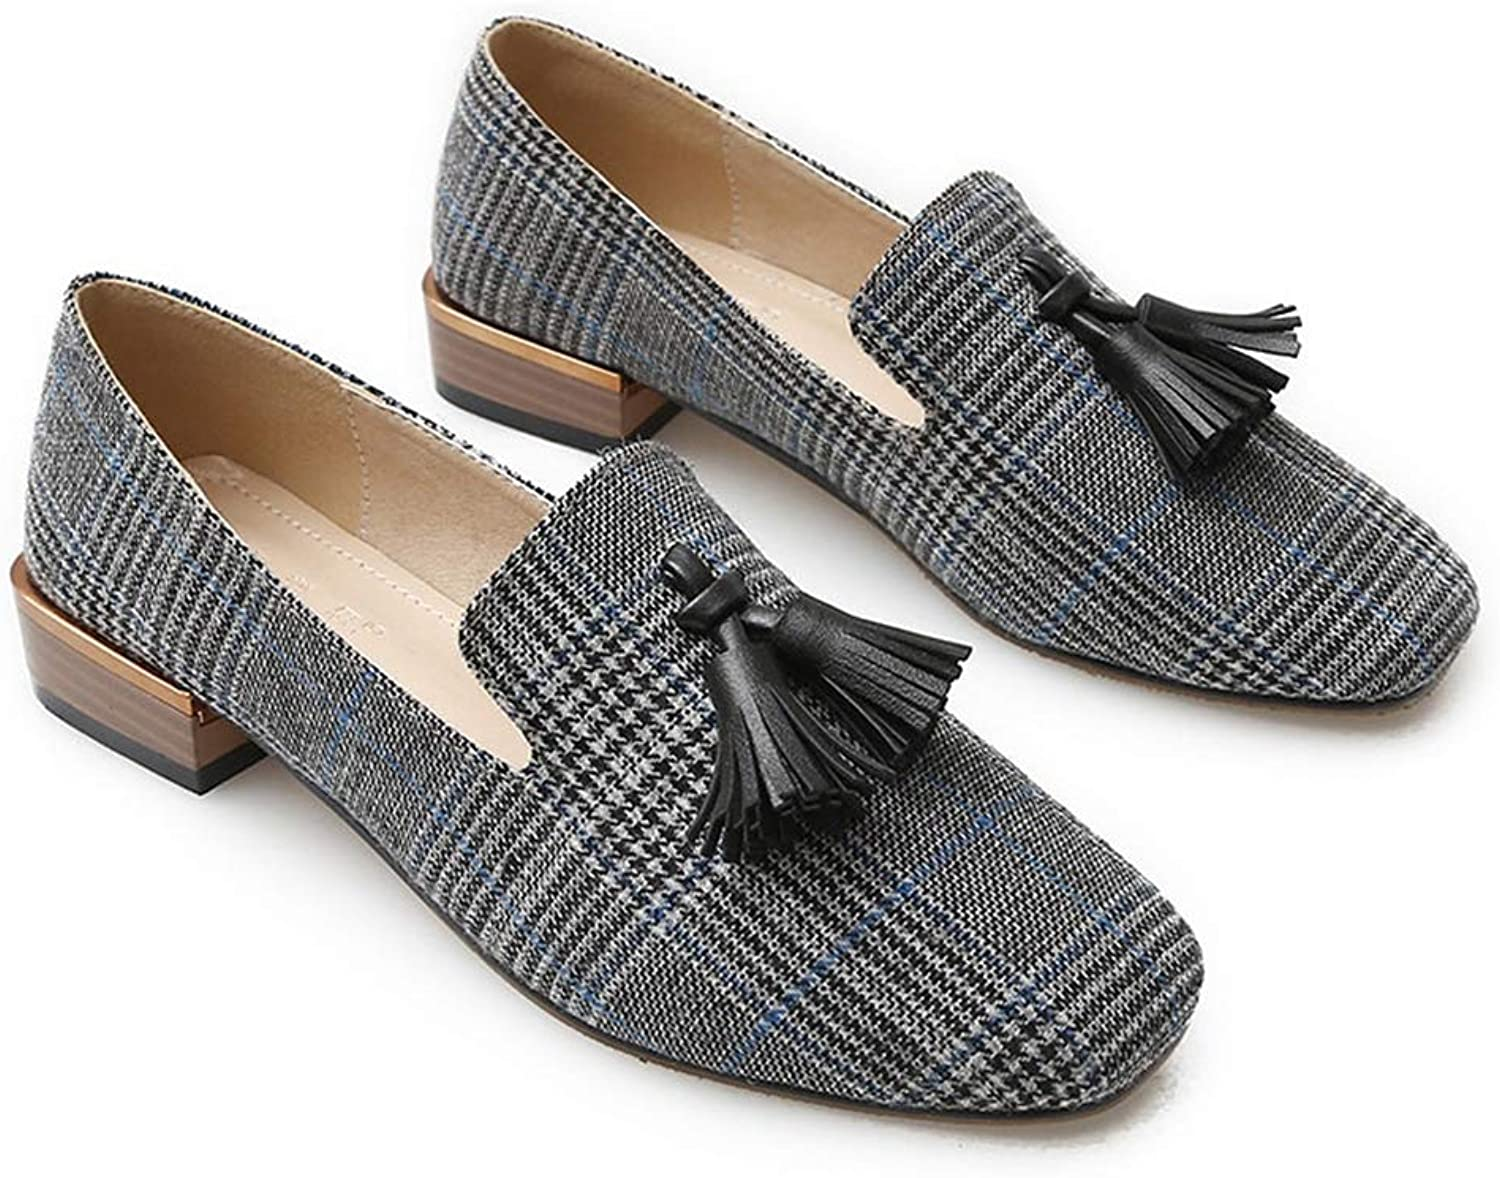 T-JULY Fringe Loafers for Girls Fashion Gingham Flats shoes Women Slip-on Soft Canvas Lazy shoes Designer Flats Luxury